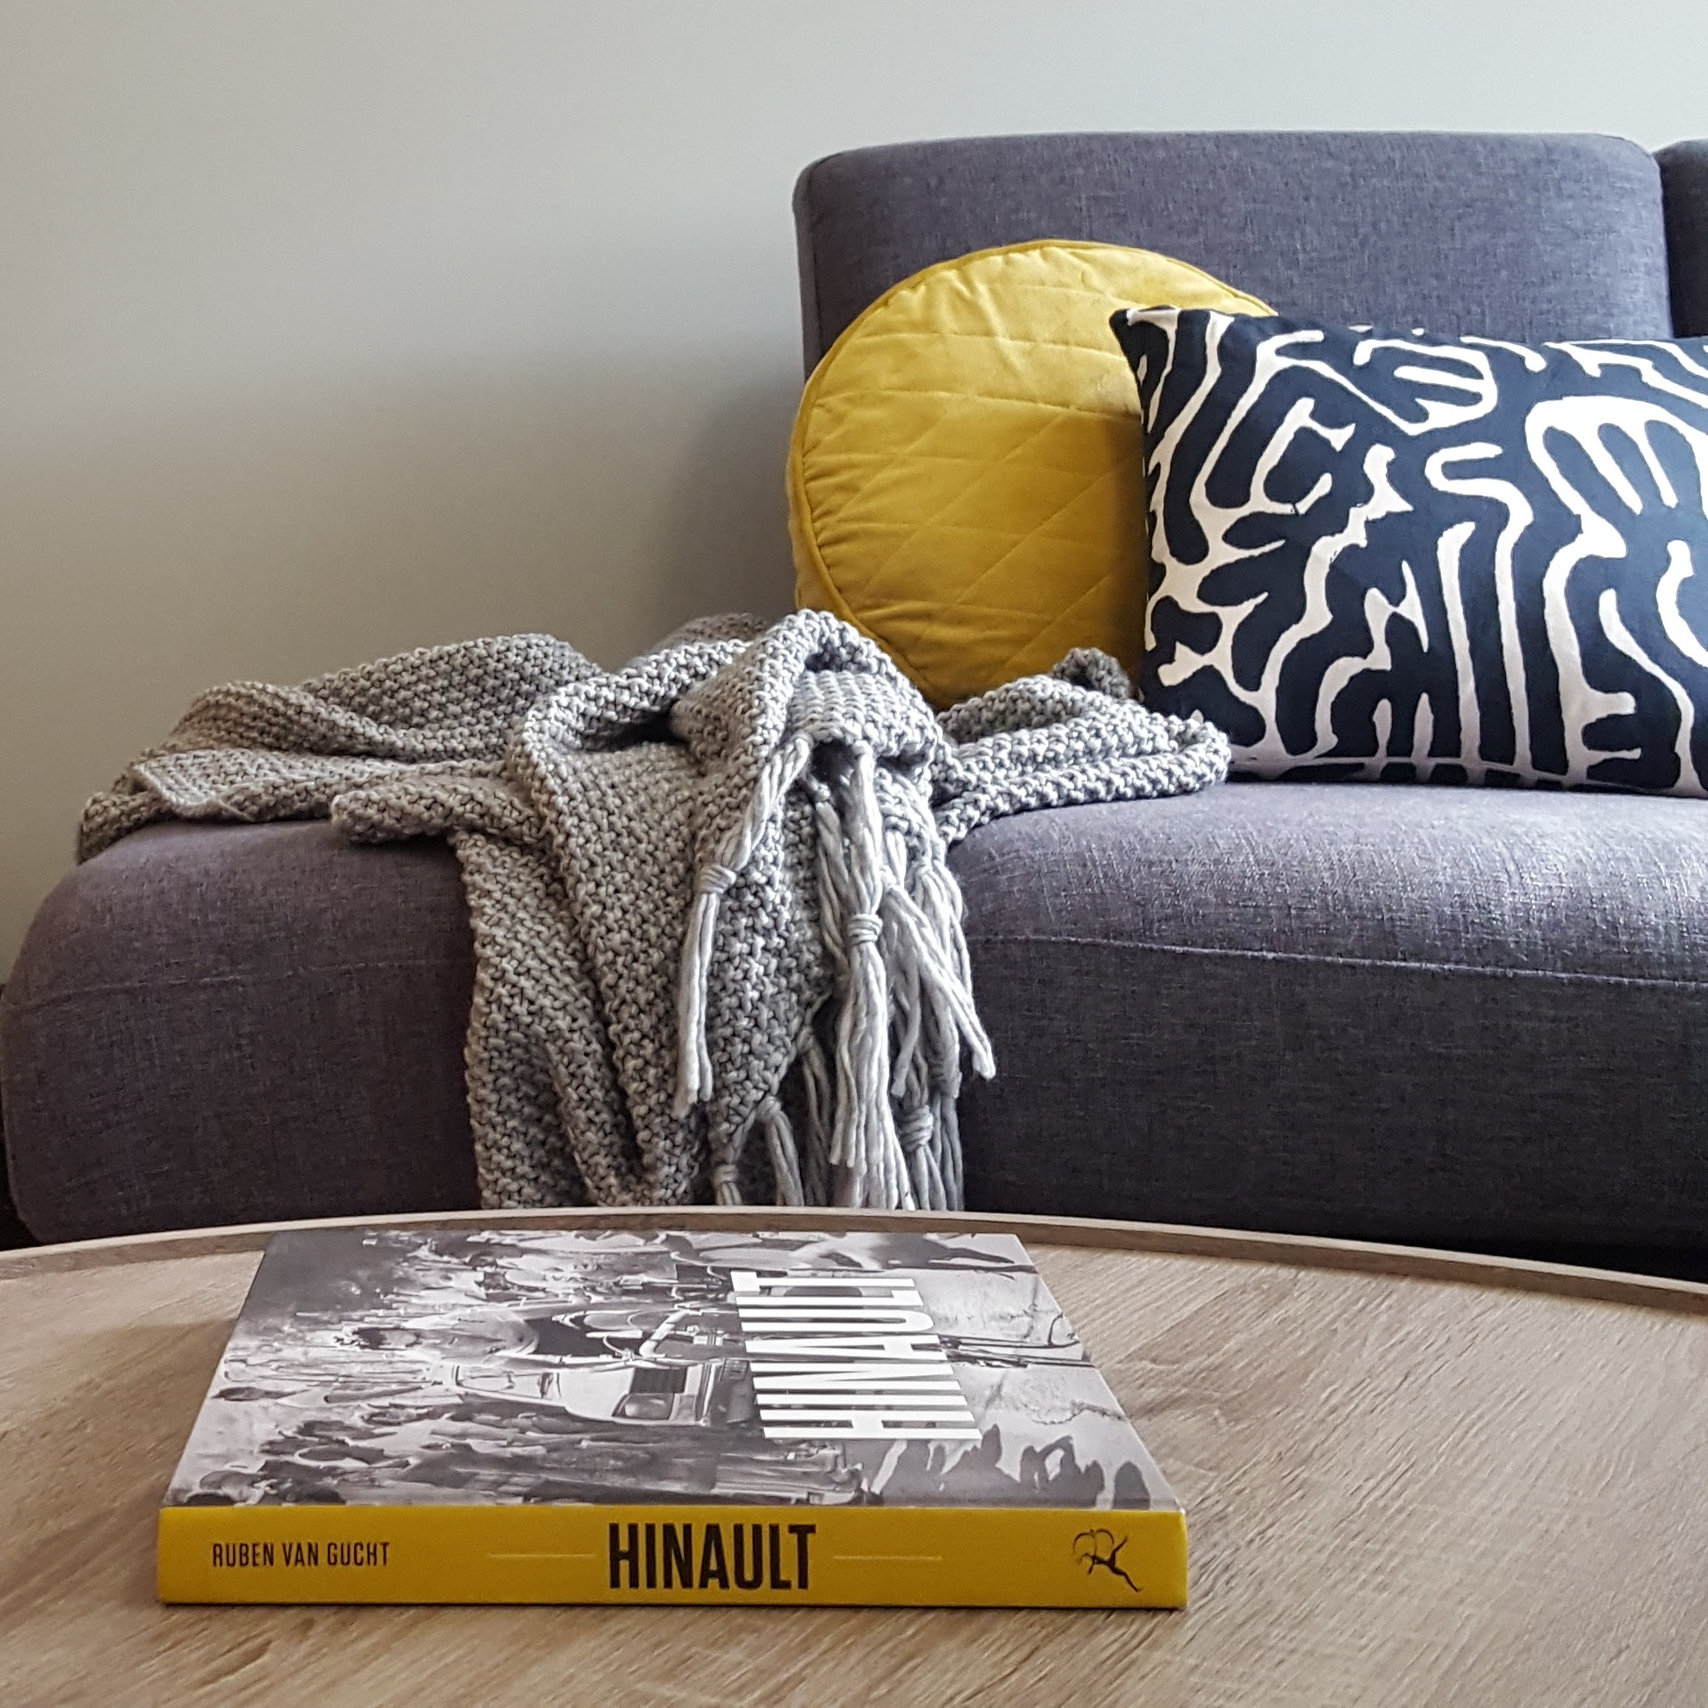 SOLD $1.07MSUBURB RECORD - 1.First impressions count, staging helps make an emotional connection with the buyers so they can imagine themselves feeling at home in your property.2.Photos of a staged property improves buyers decision to inspect your property over your competition.